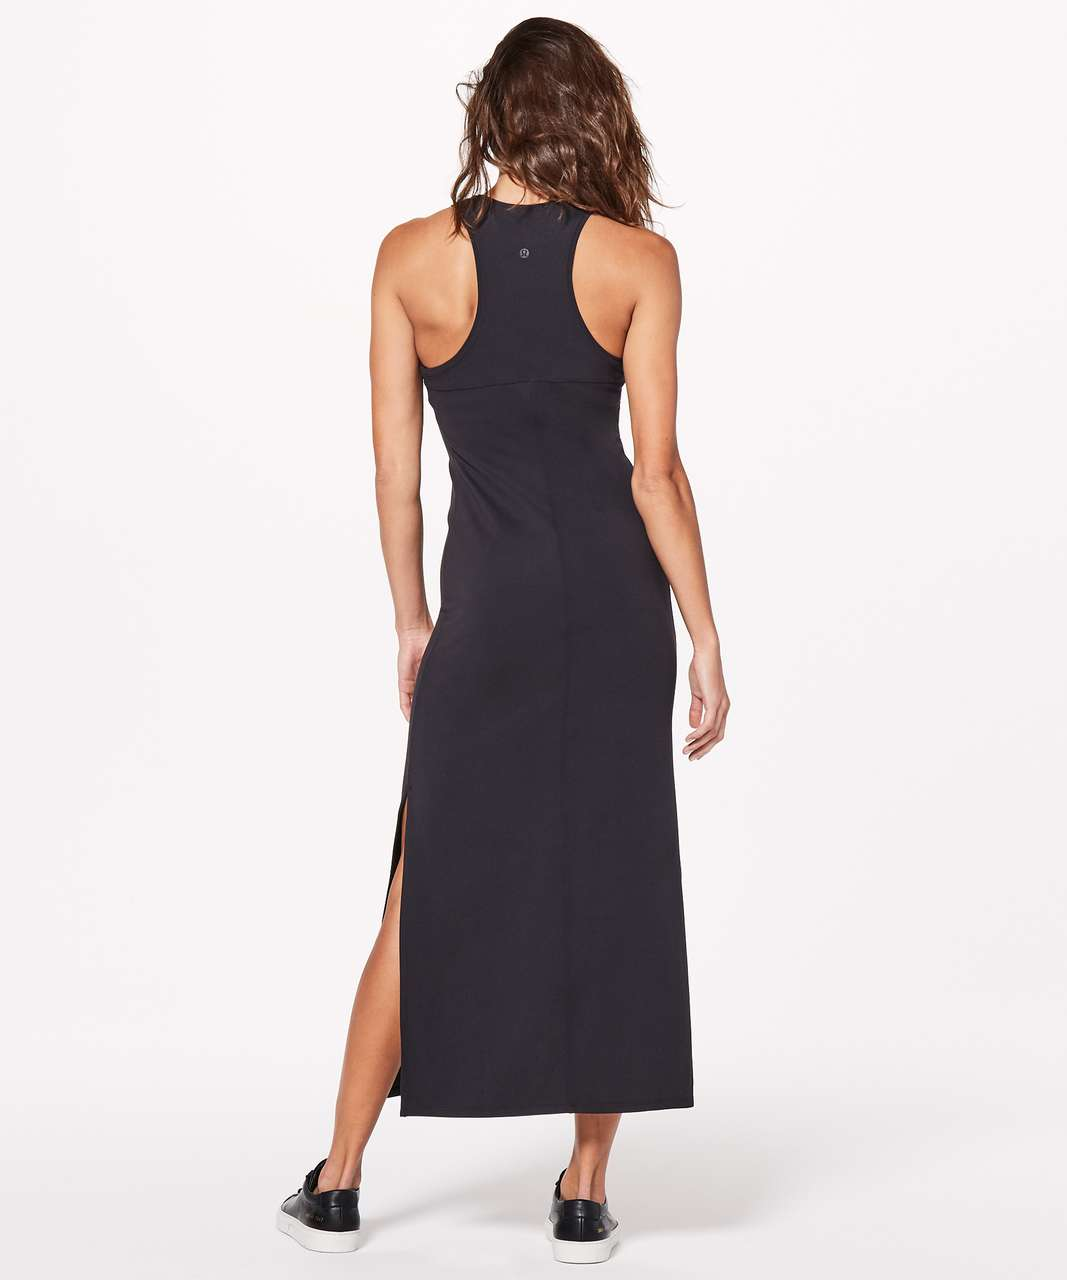 Lululemon Get Going Dress - Black